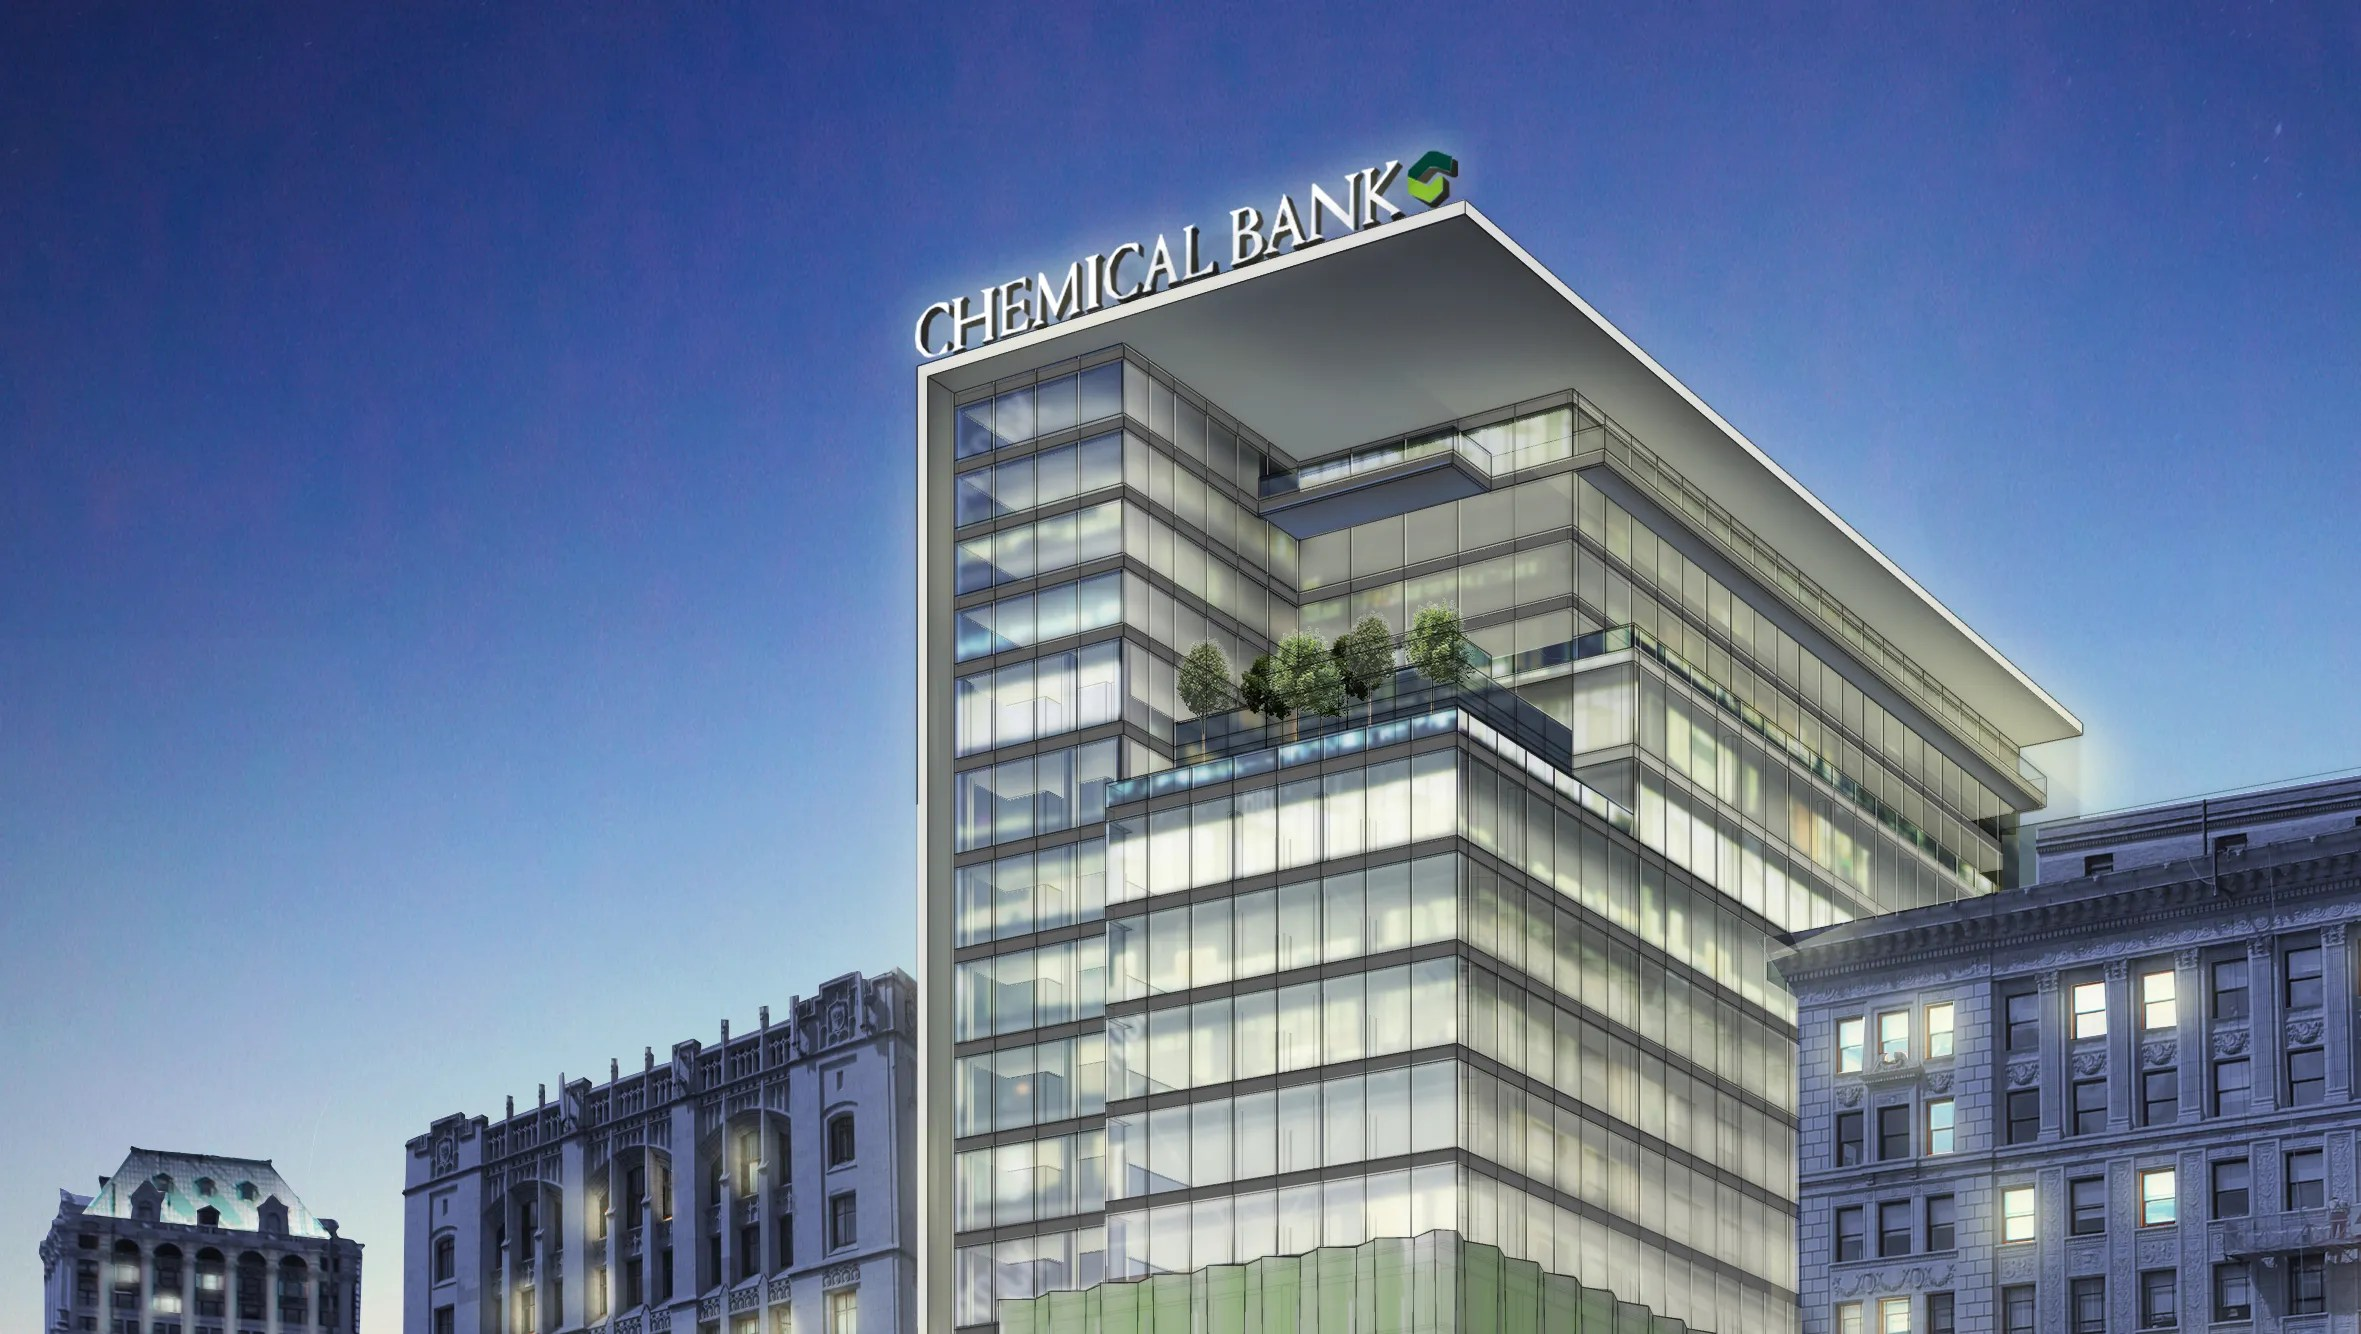 Chemical Bank Online Personal Banking